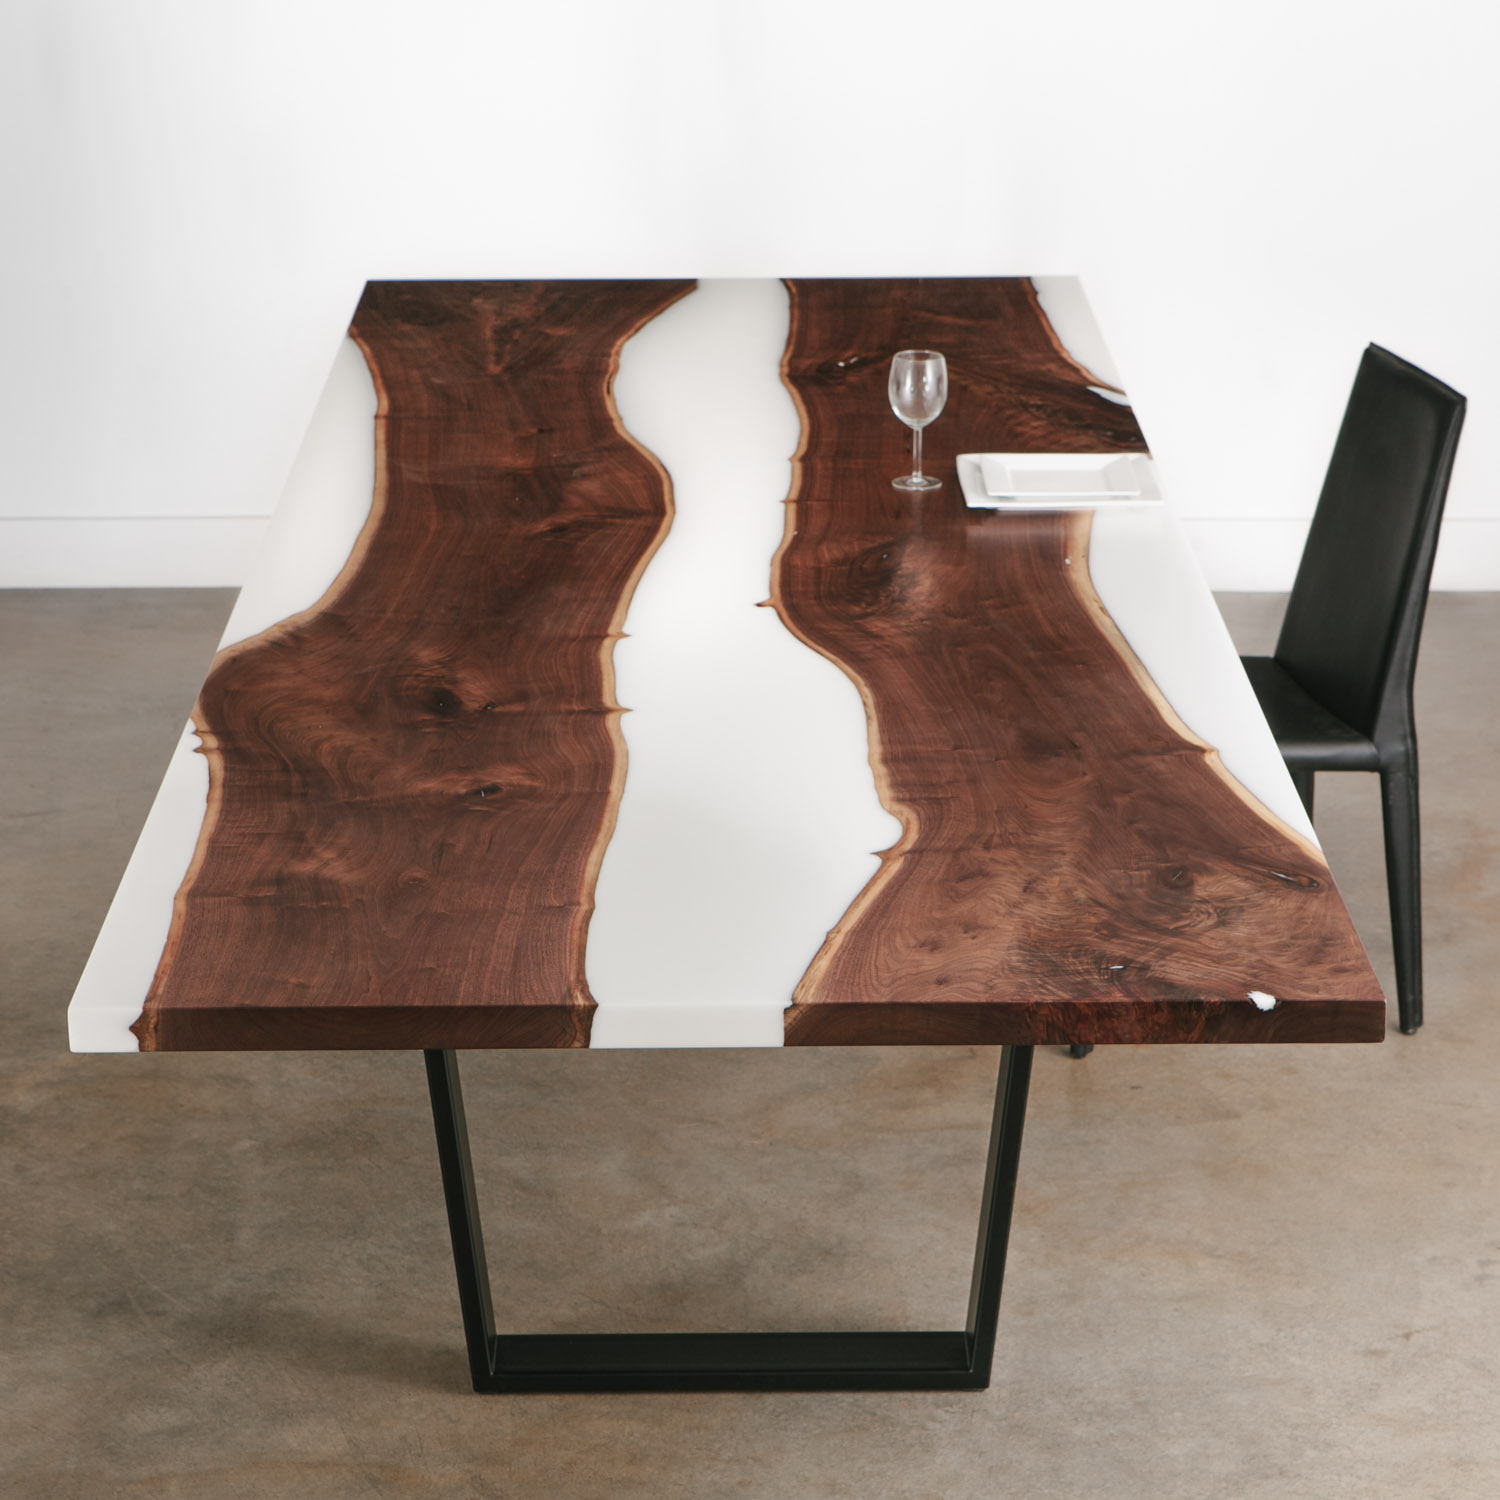 Walnut Dining Table No 281 Elko Hardwoods Modern Live Edge Furniture Dining Coffee Tables Desks Benches